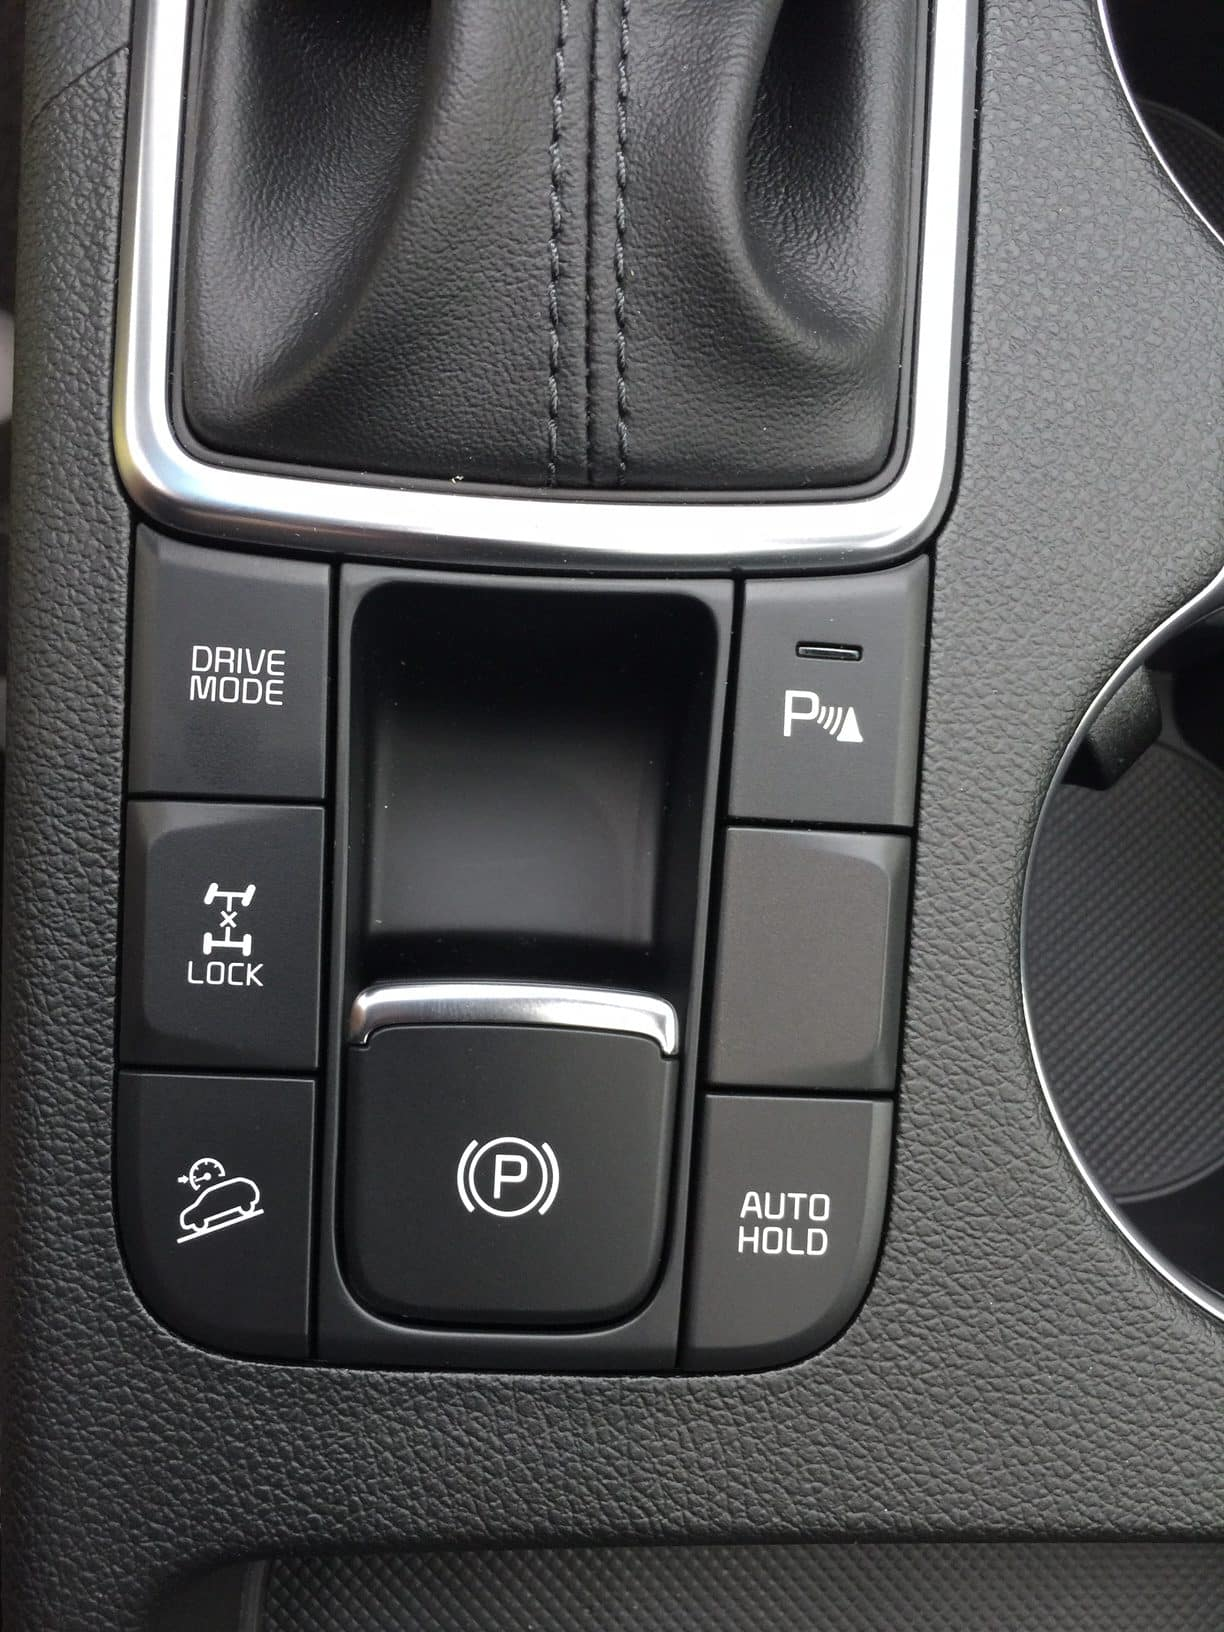 Kia Owners - Learn About Drive Modes On Your Kia Model